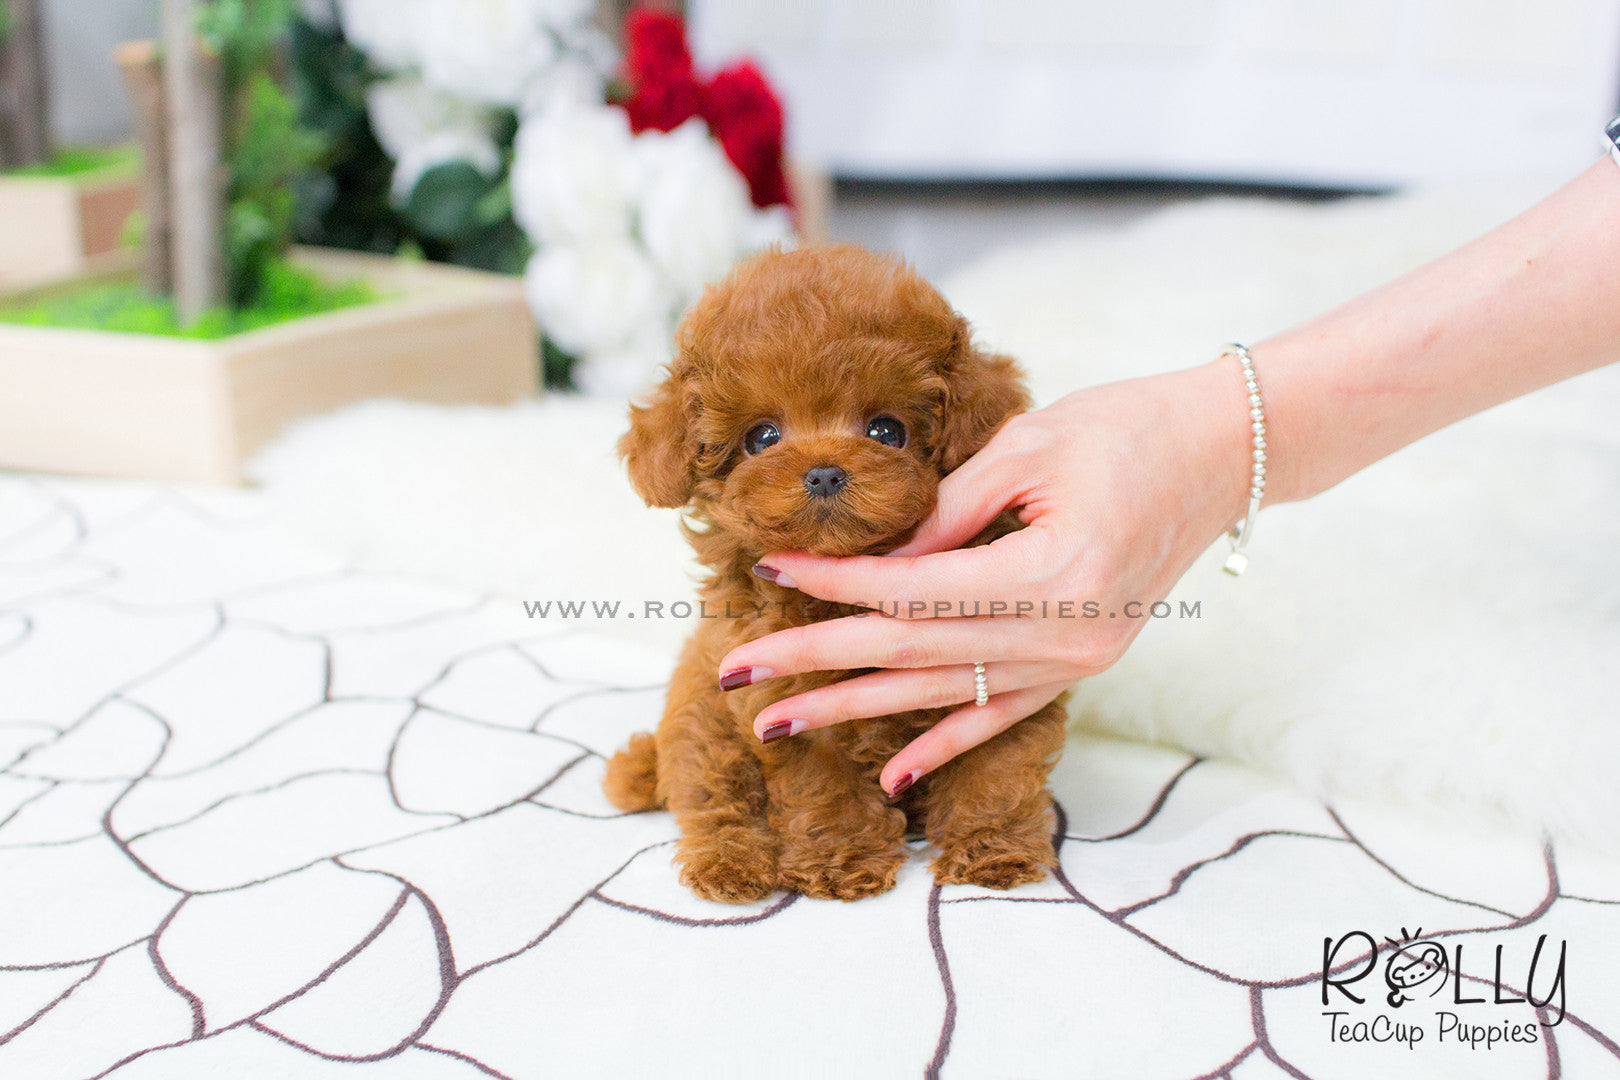 Bridget Poodle Rolly Teacup Puppies